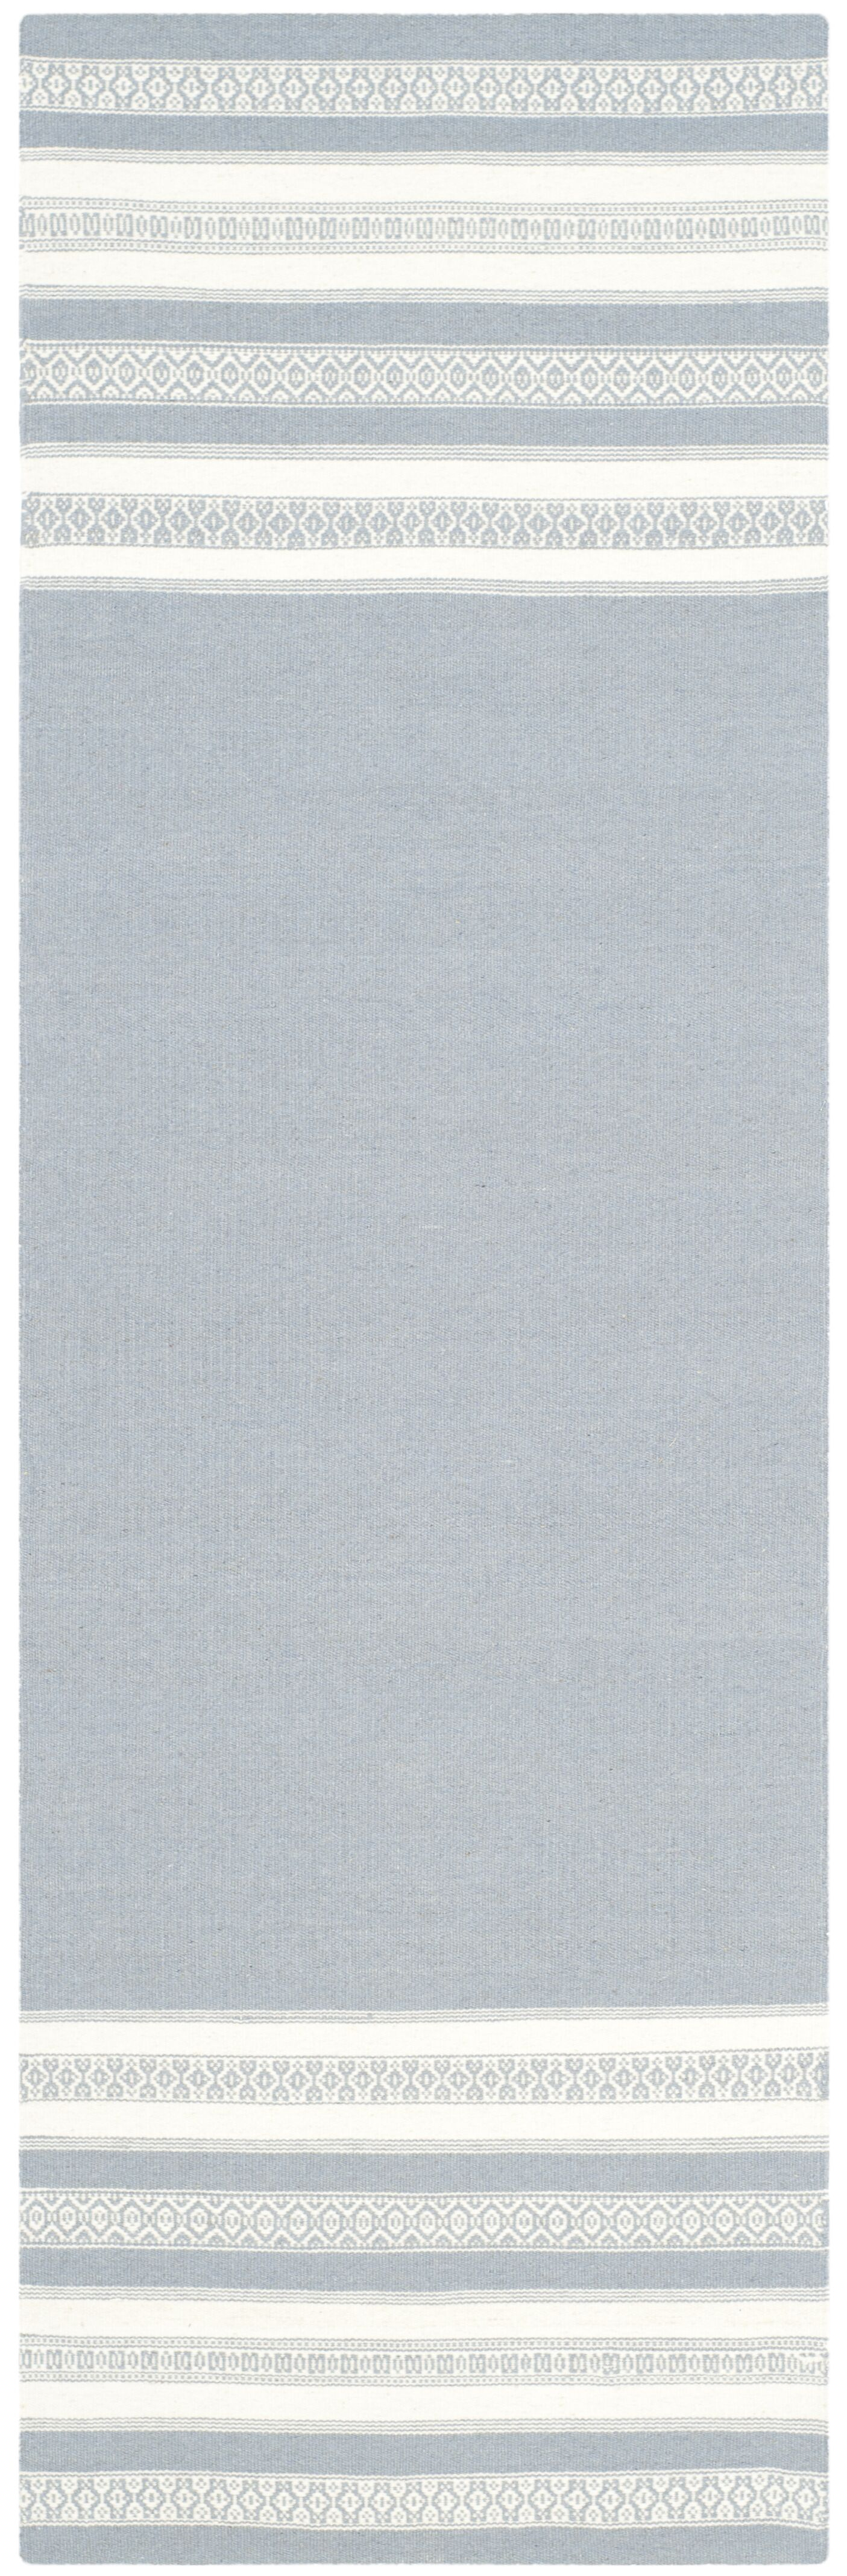 Dhurries Hand Woven Cotton Gray Area Rug Rug Size: Runner 2'6